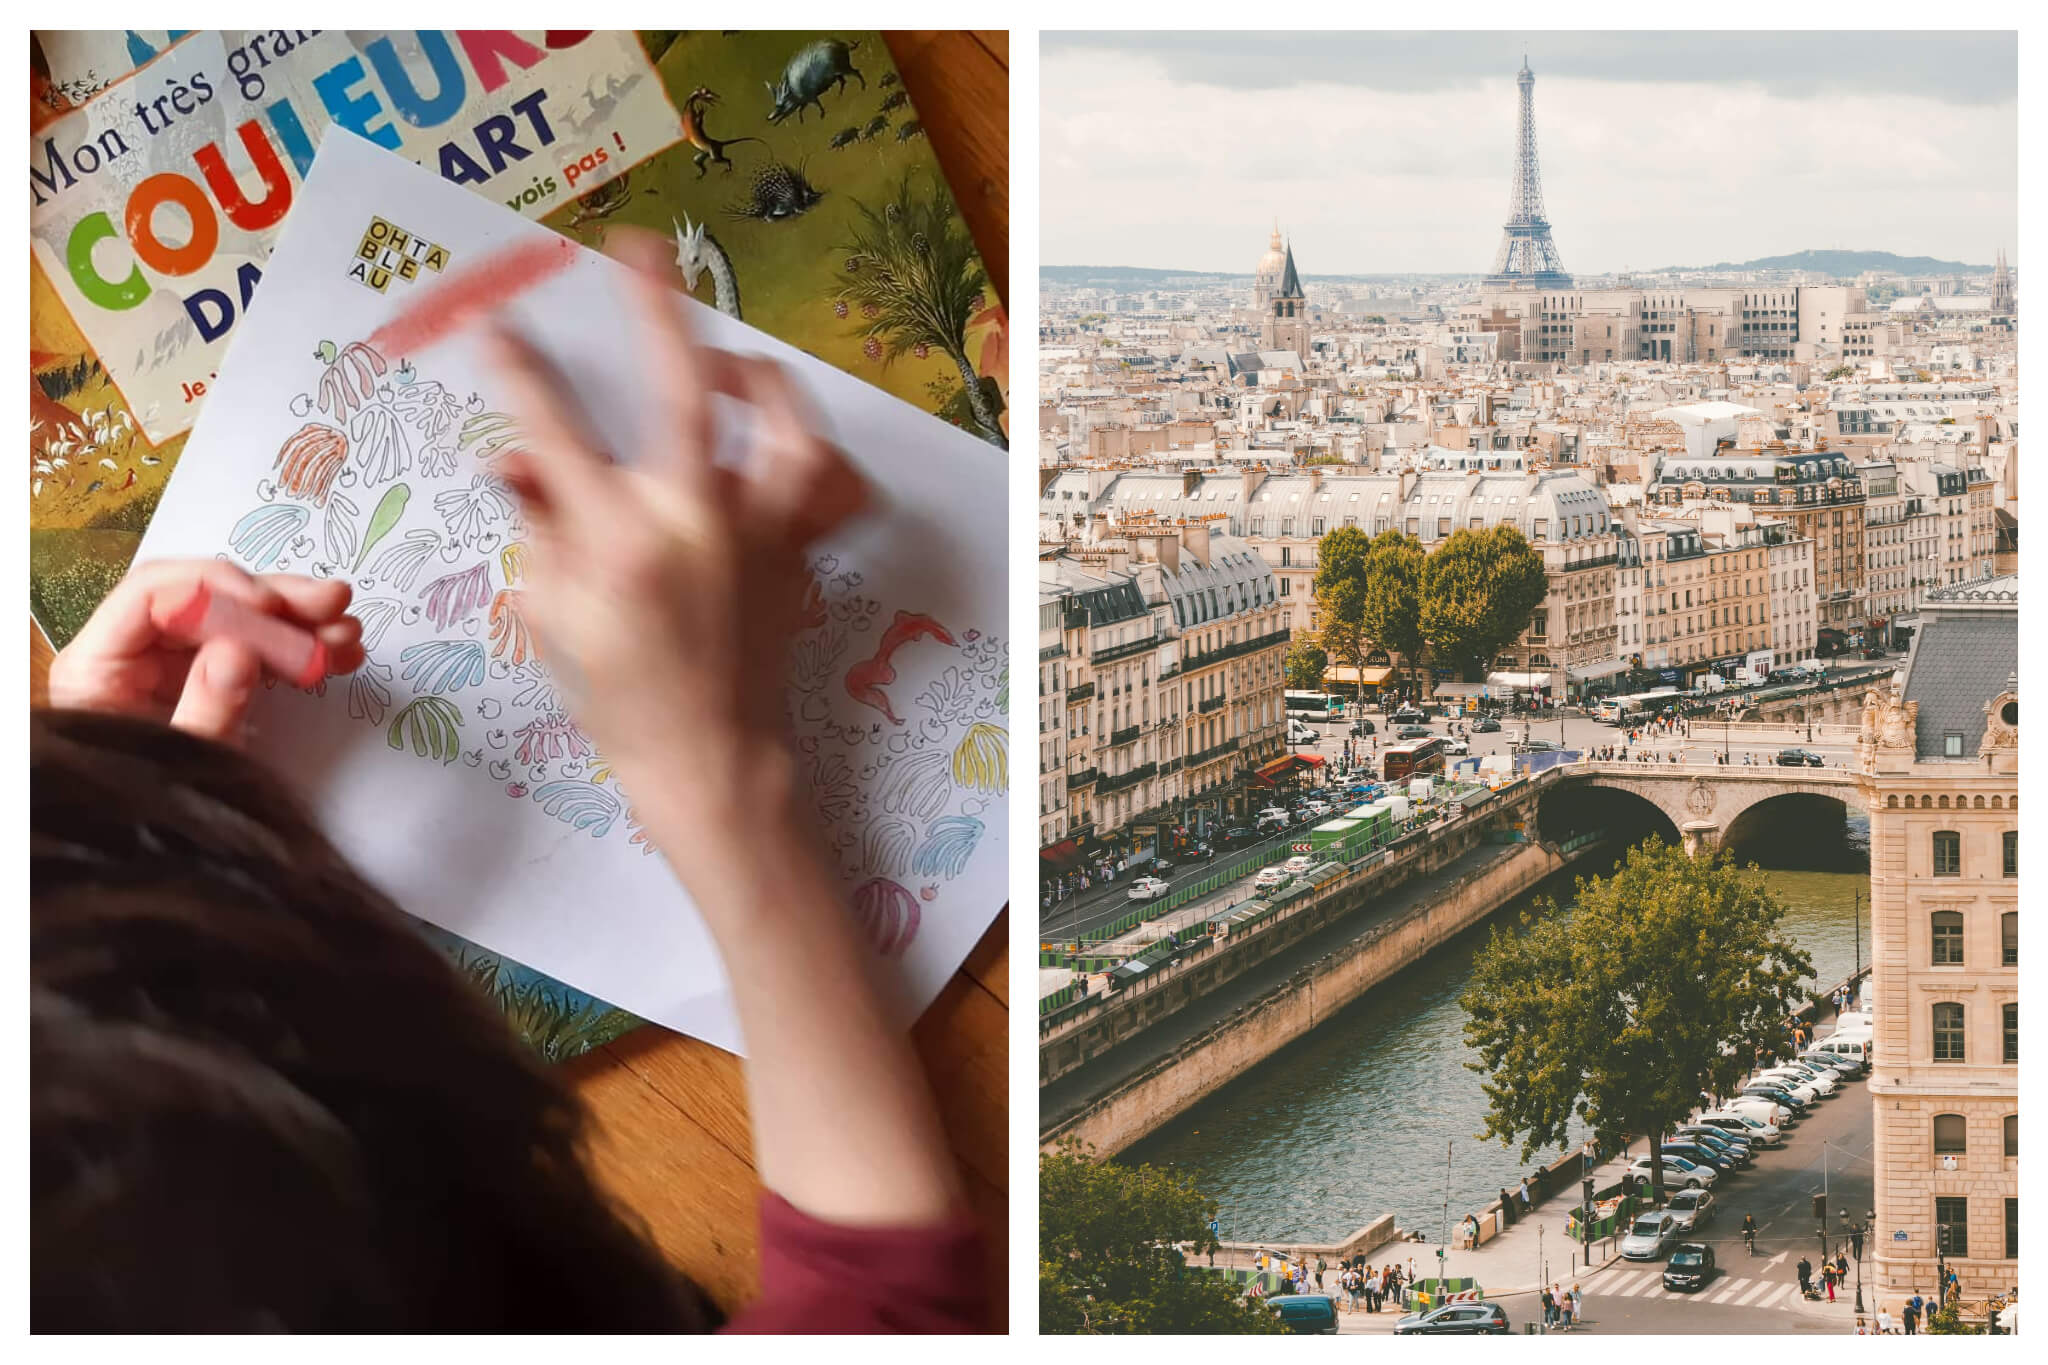 Left: A child uses pastel and their hands to draw on a coloring sheet, Right: A view of the seine, Parisian apartments and Eiffel Tower on a sunny day.